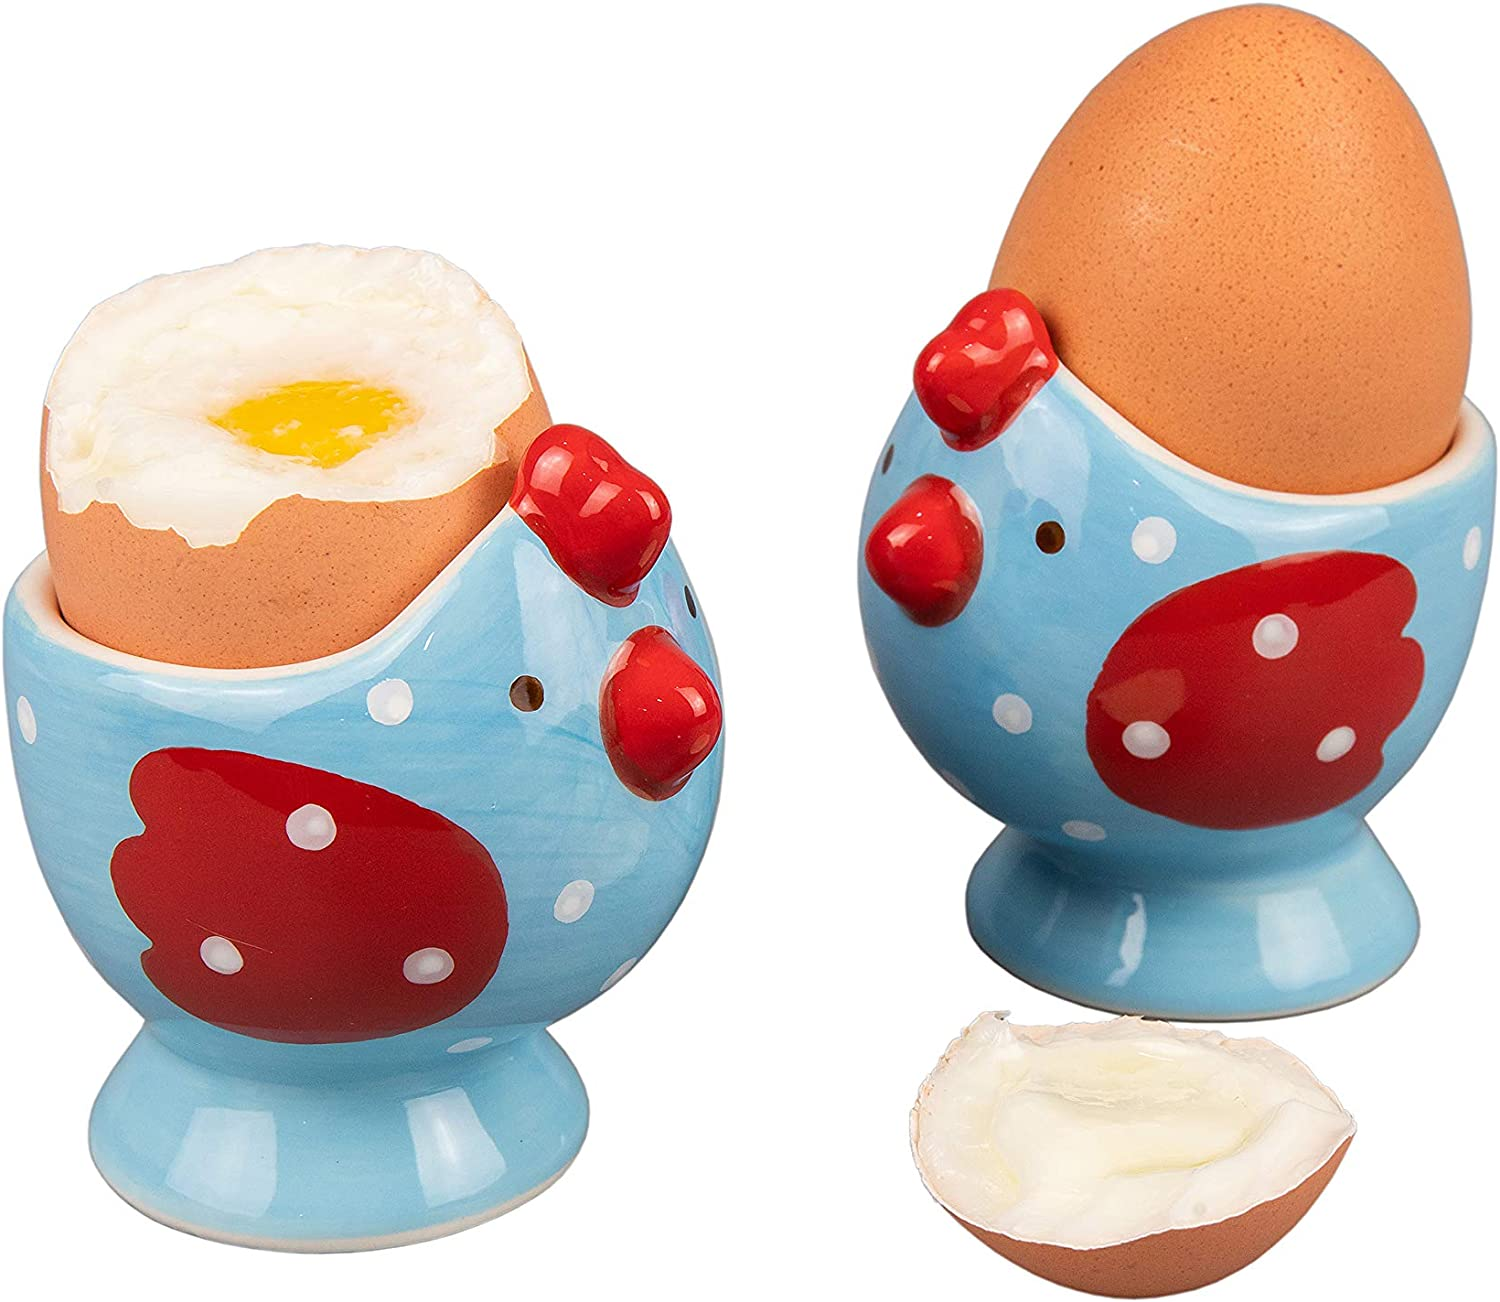 WD - 2 Pcs Cute Chicken Shape Today's only cu egg boiled or Hard Ceramic soft Excellent